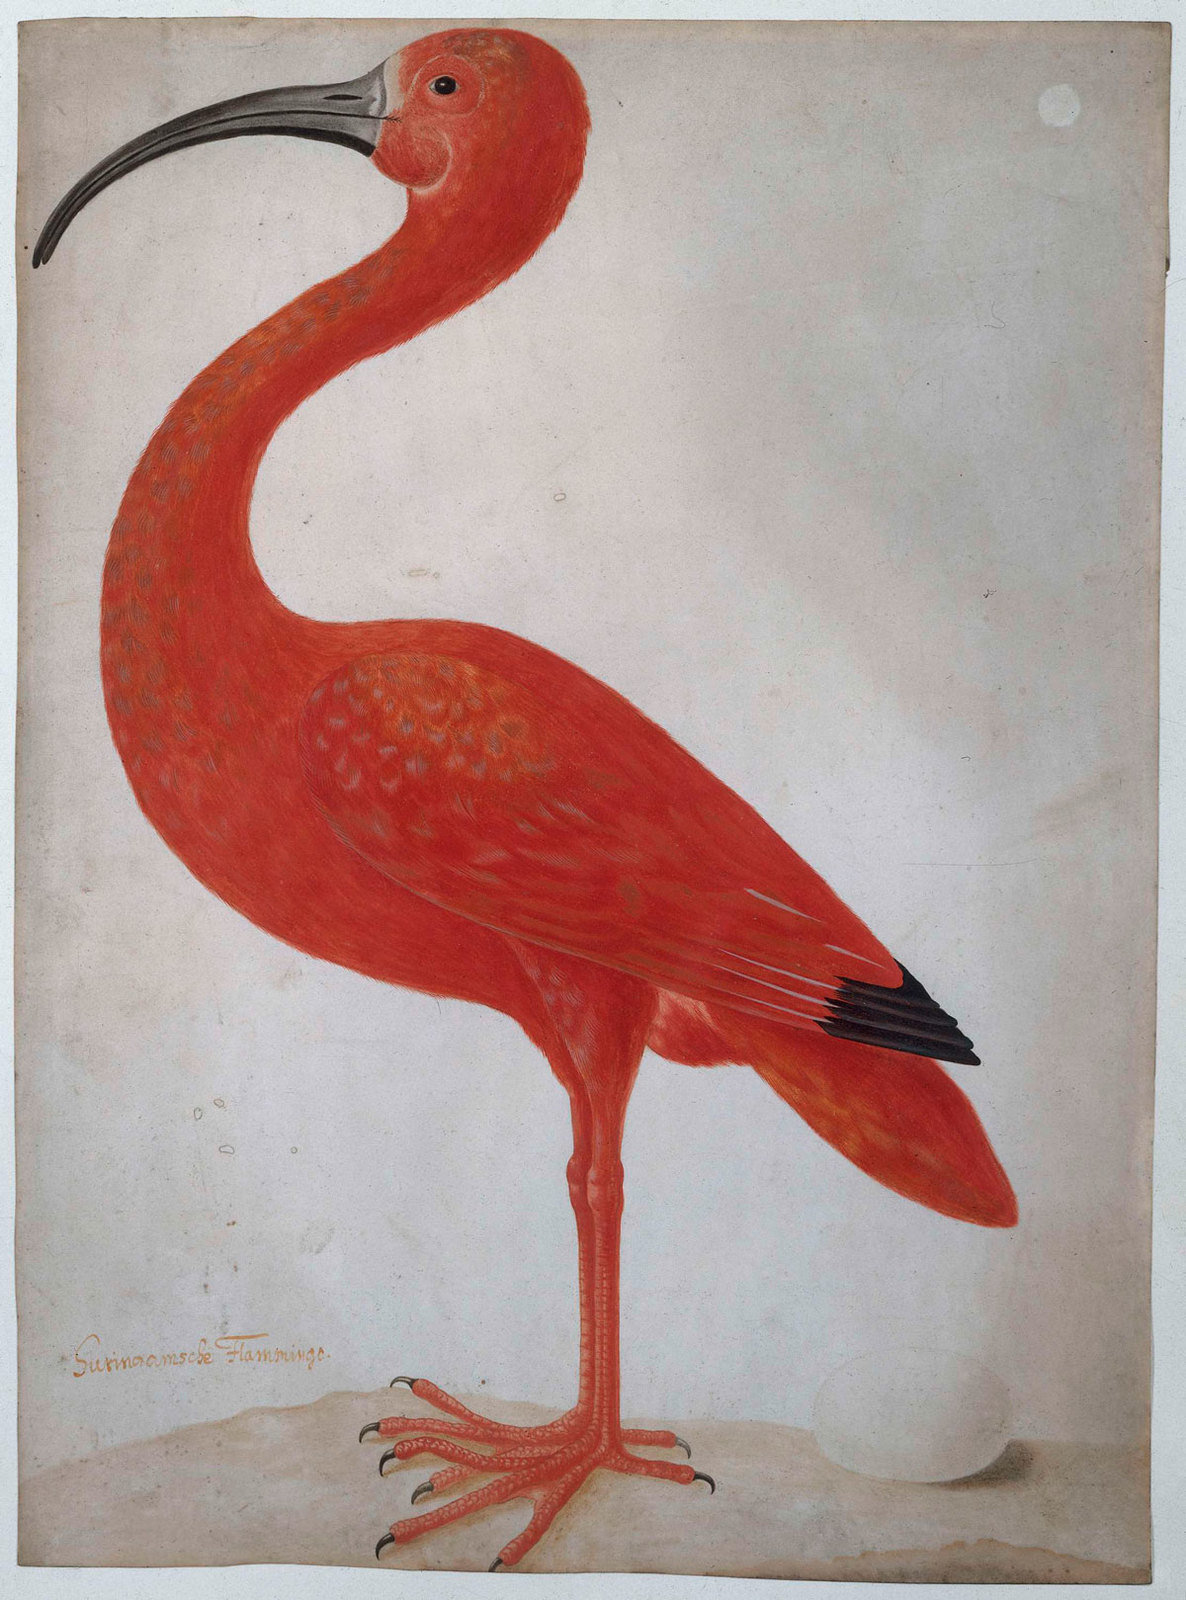 Scarlet Ibis with an Egg, 1699 - 1700, Maria Sibylla Merian, Rijksmuseum, Public Domain Mark